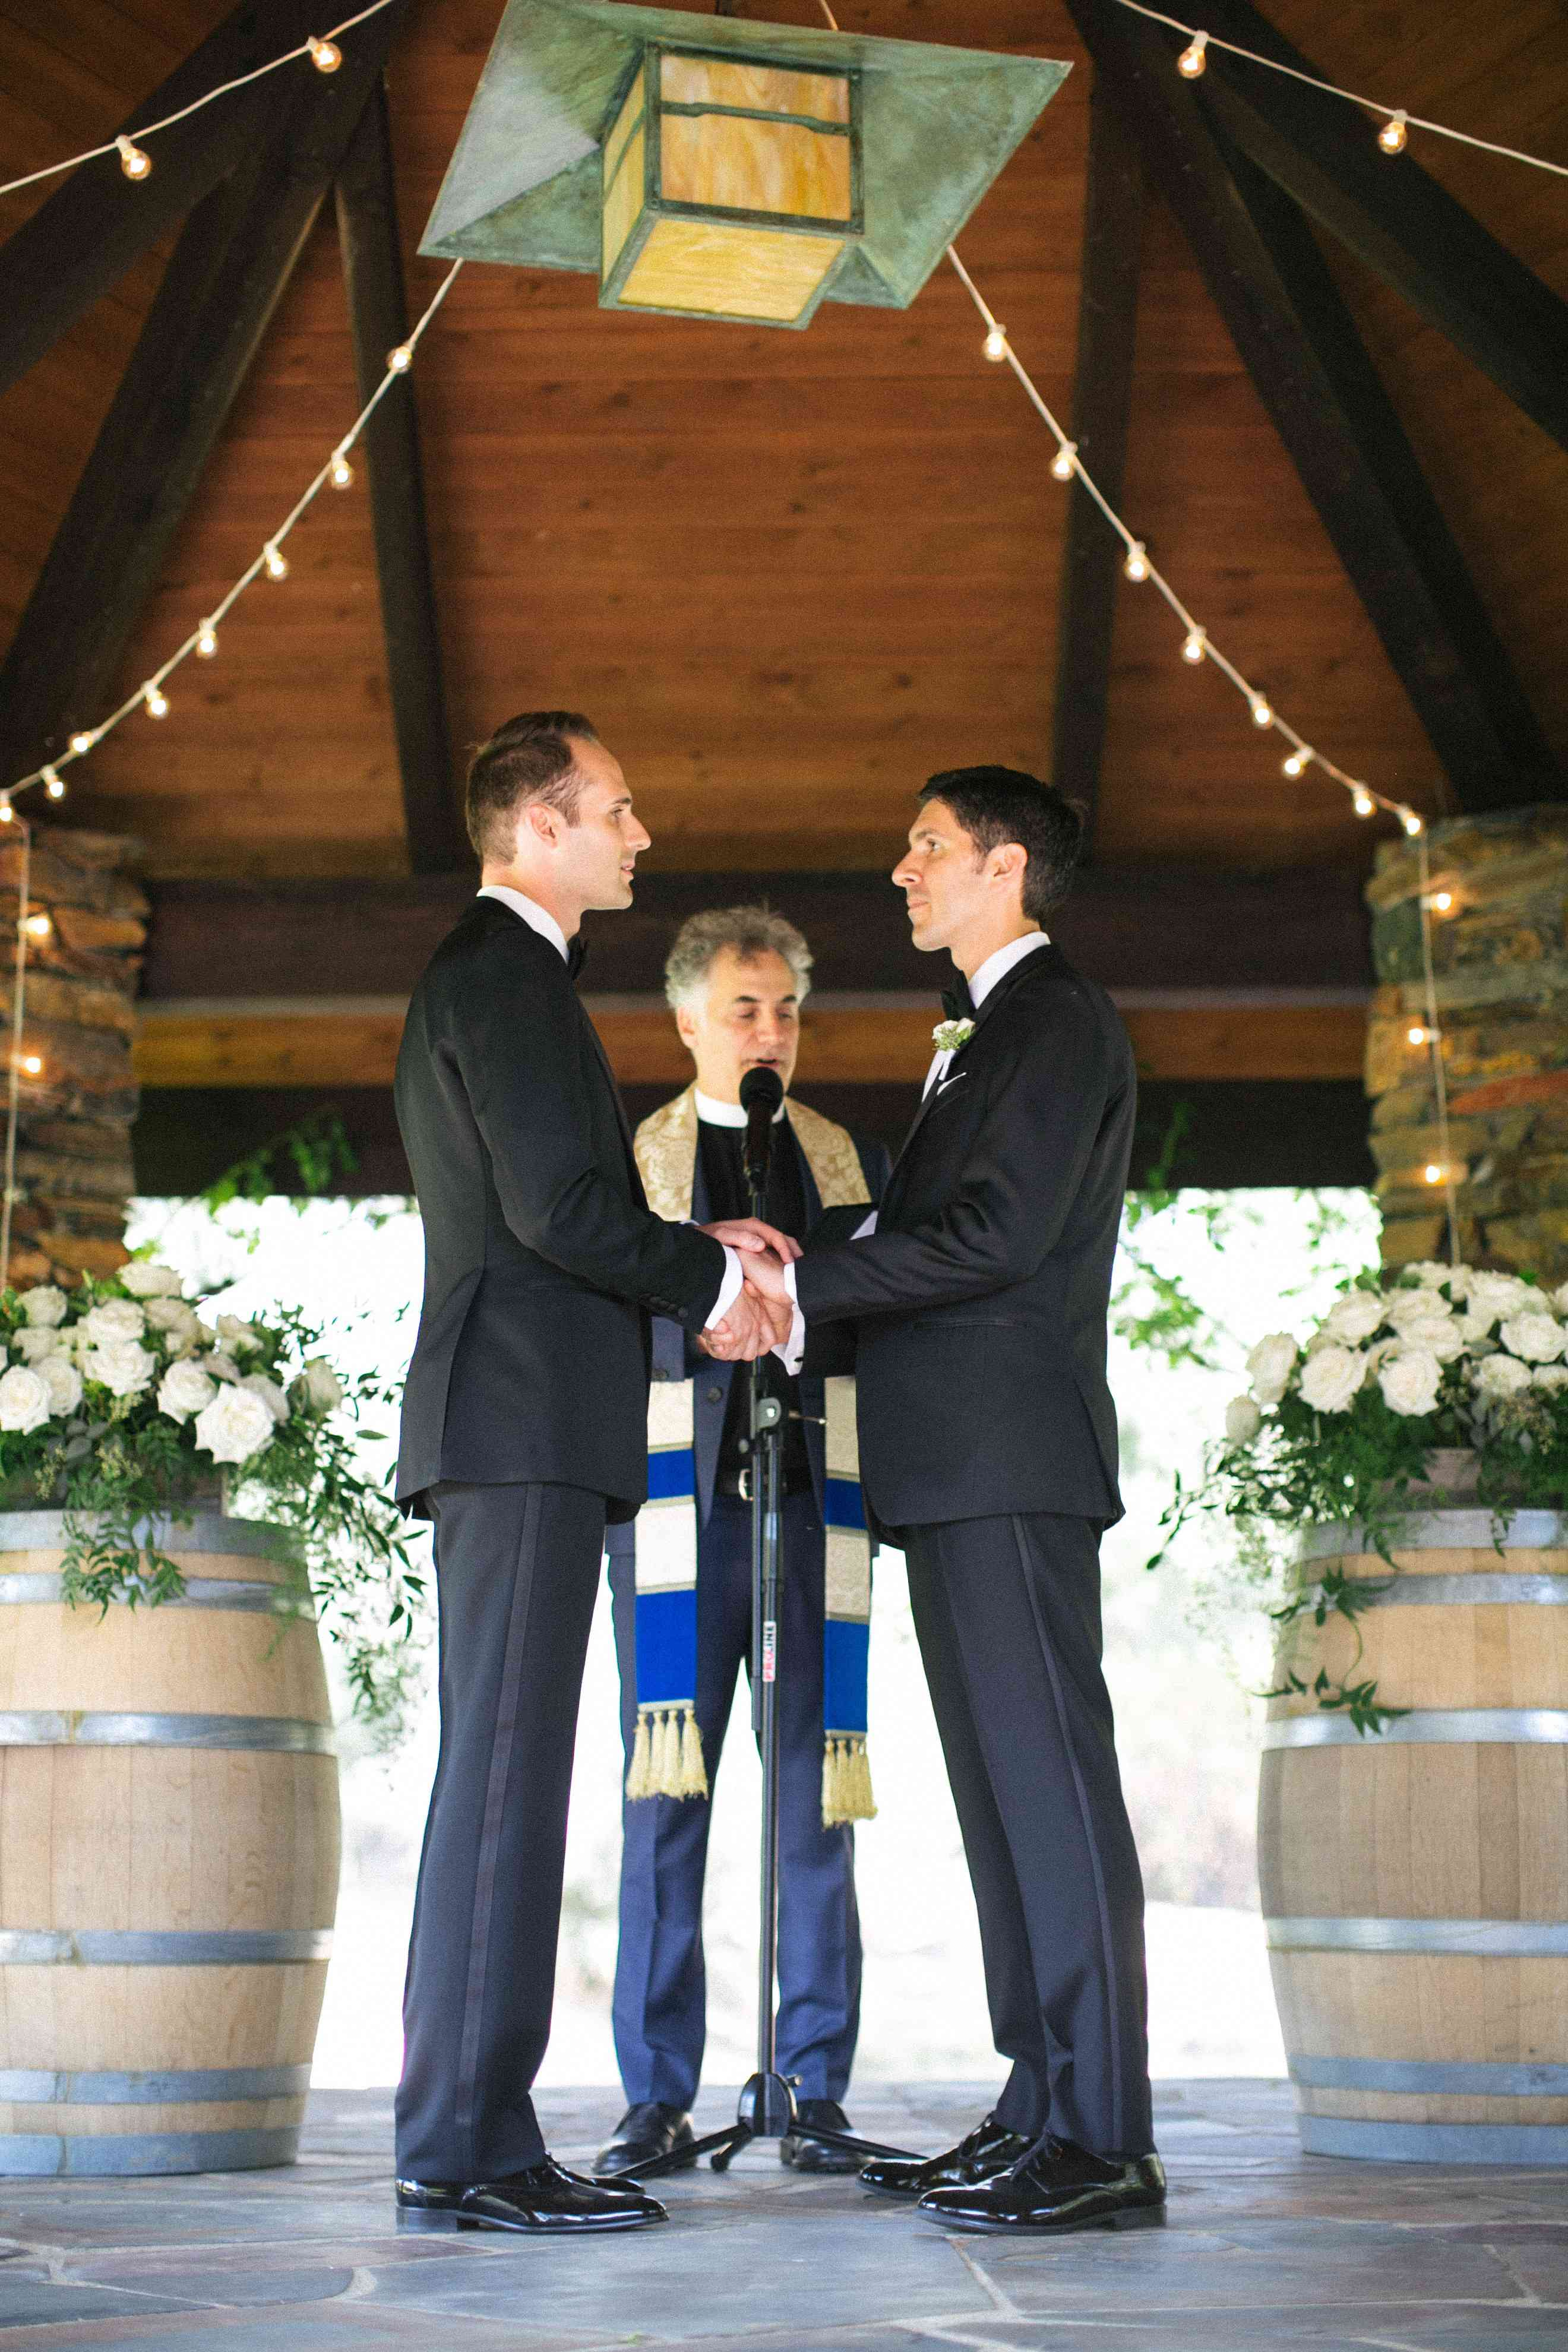 Grooms exchanging vows